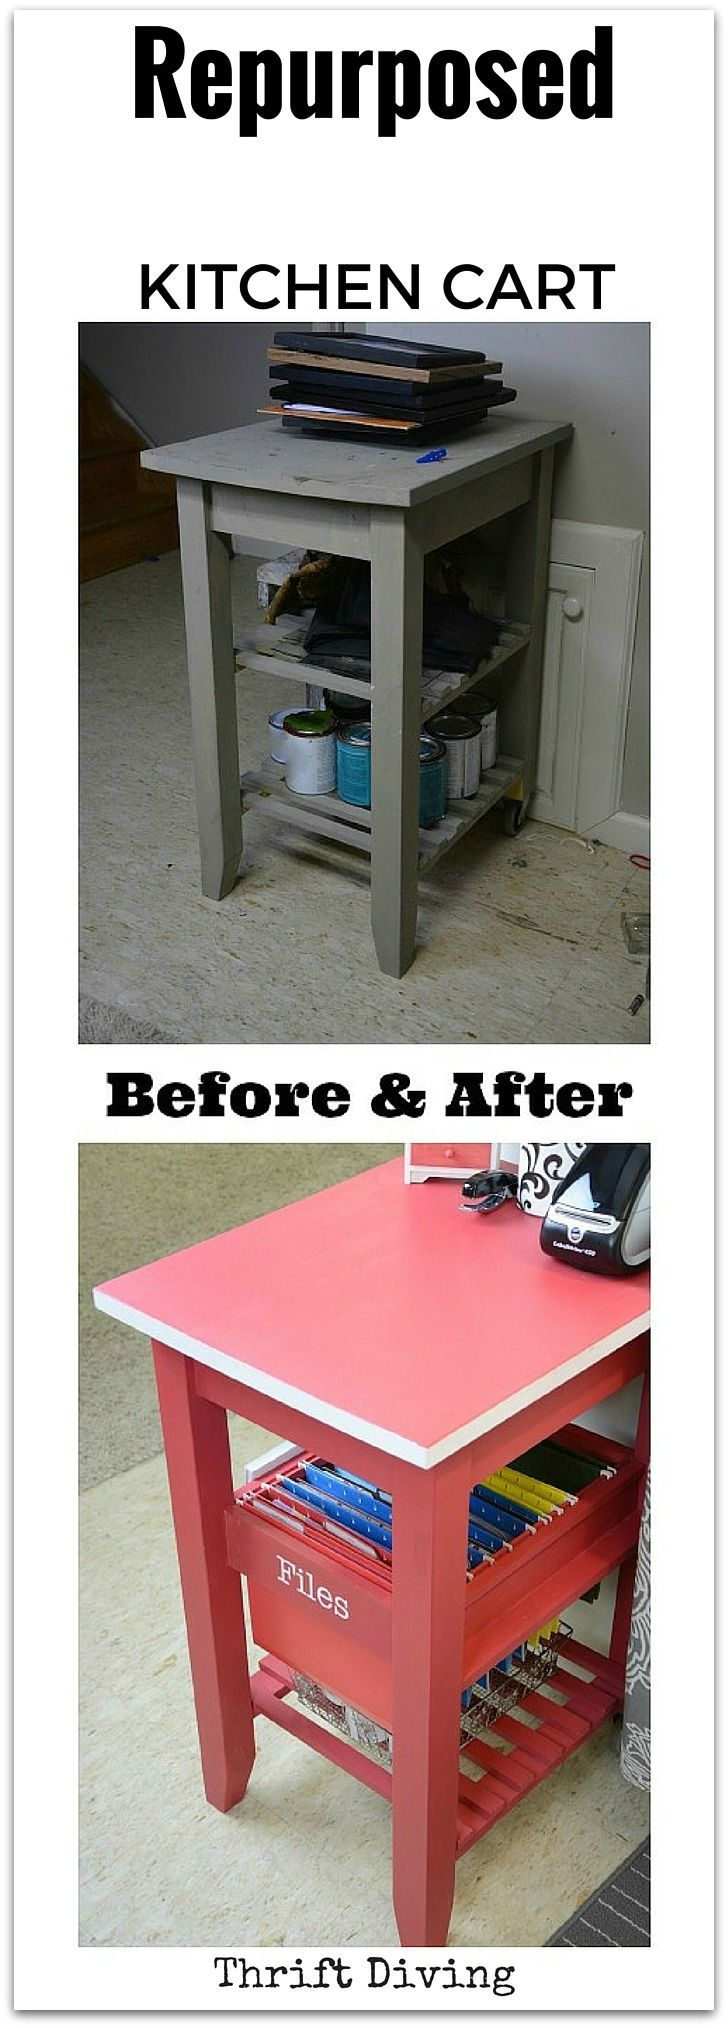 How to repurpose a kitchen cart and get organized kitchen carts